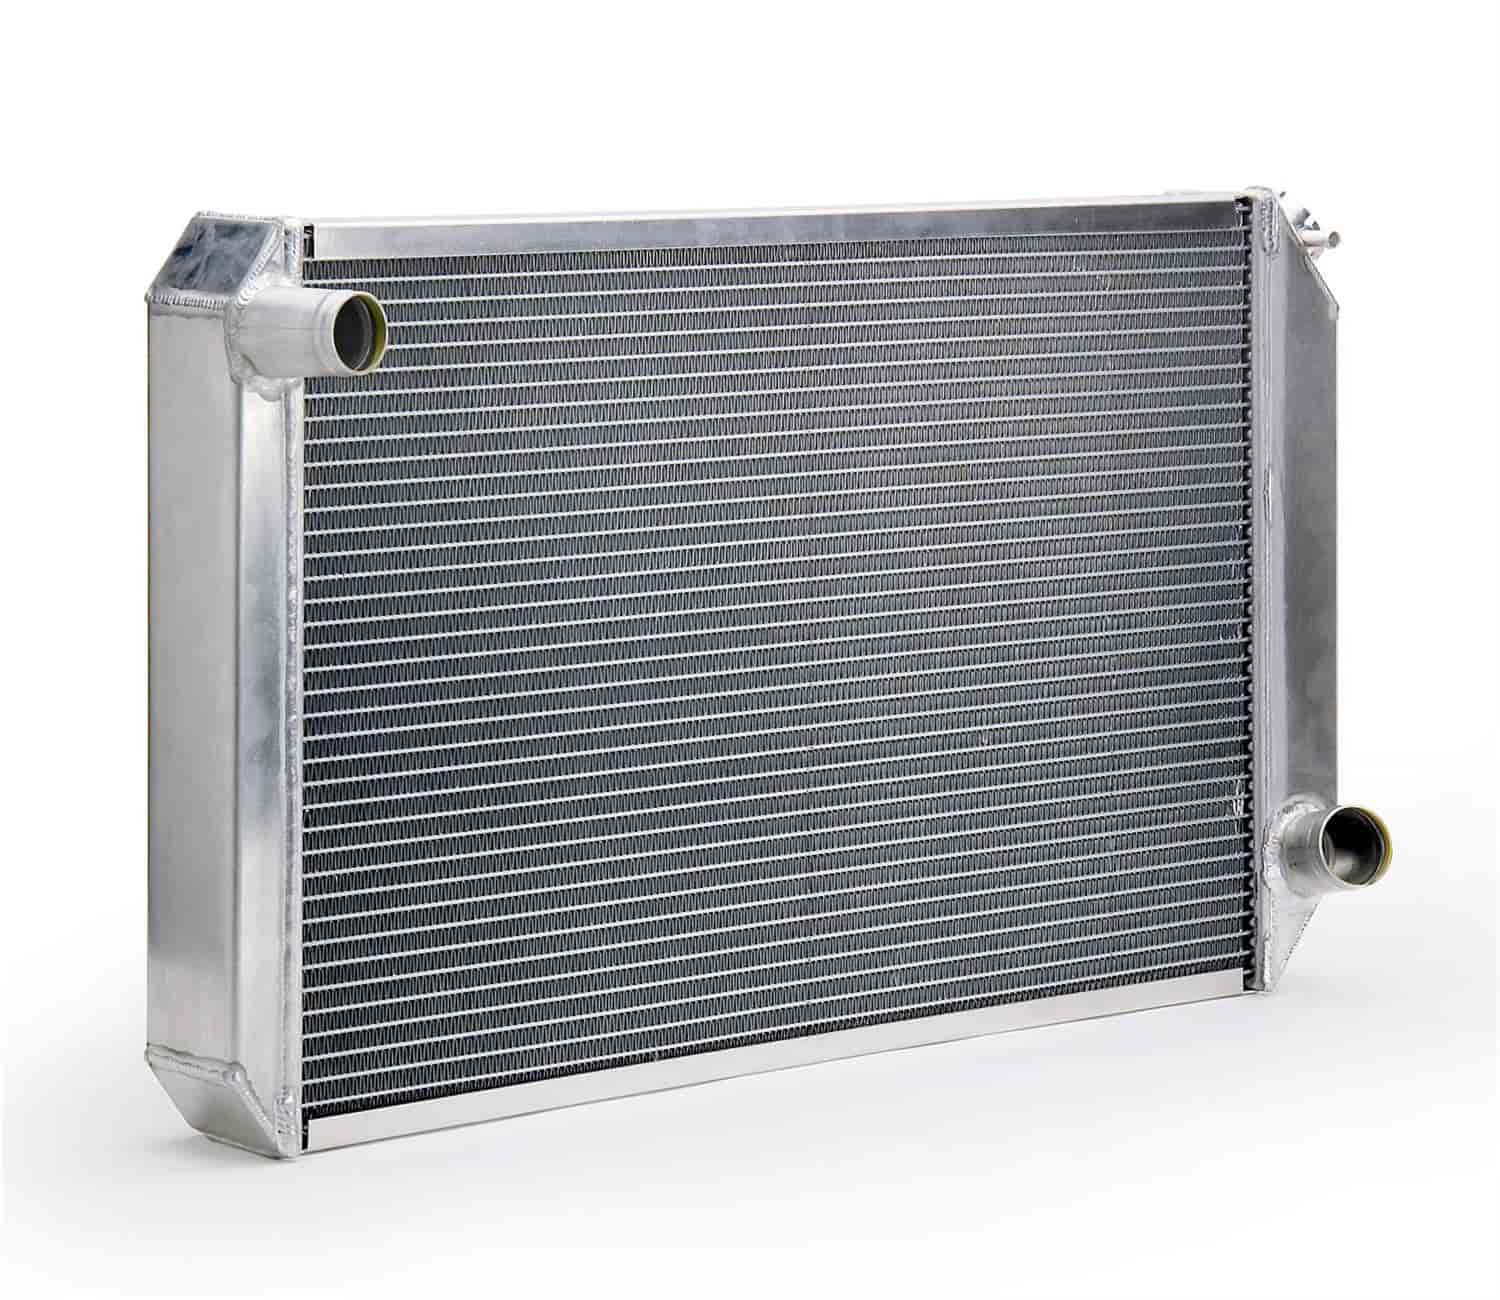 Be Cool Radiators 60236 - Be Cool Crossflow Series Aluminum Radiators